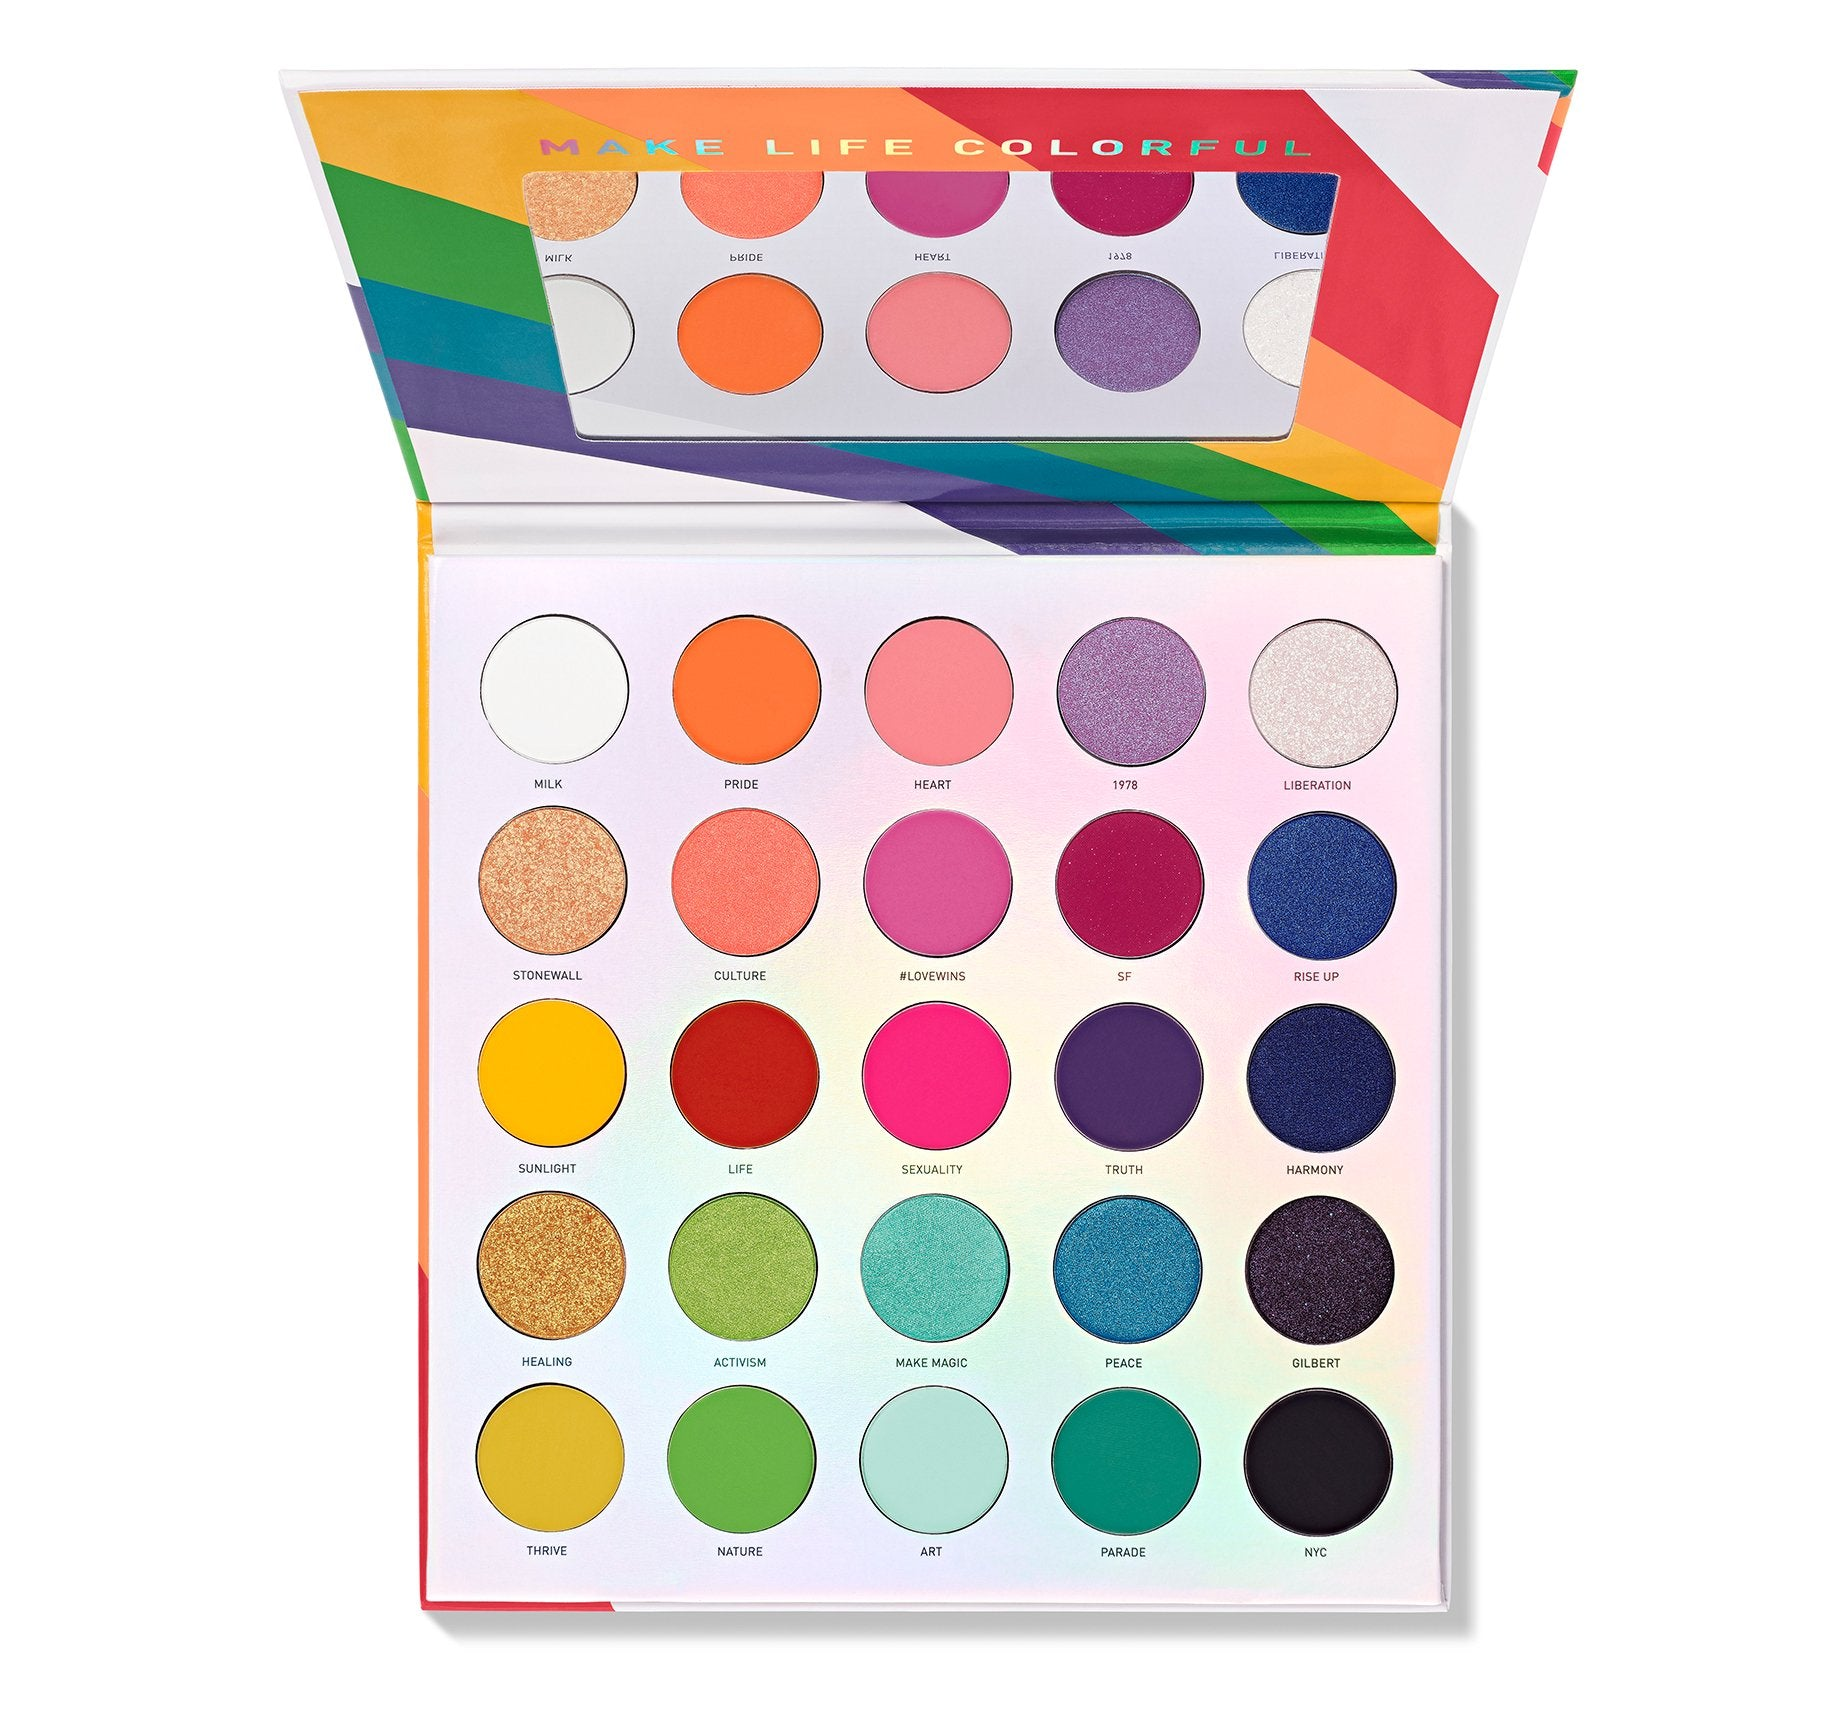 25L LIVE IN COLOR ARTISTRY PALETTE, view larger image